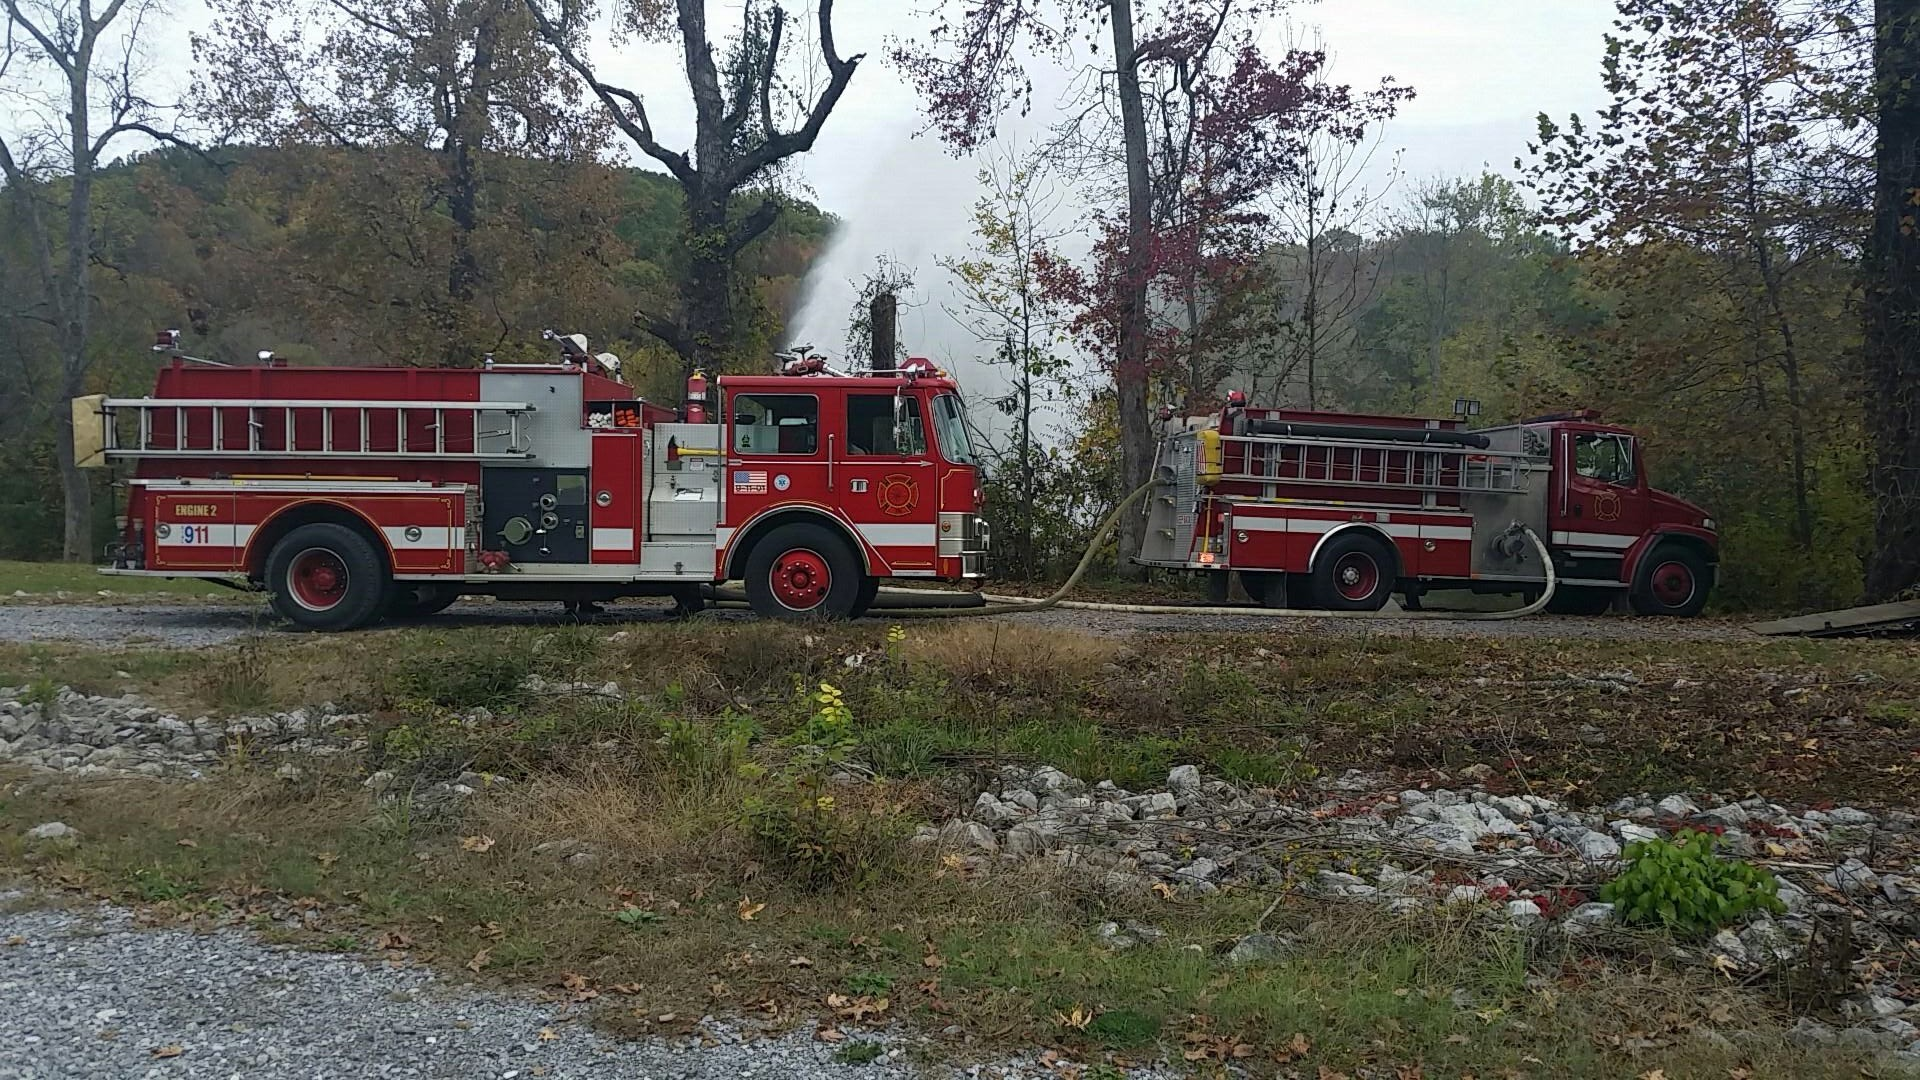 Engine 1 and Engine 2 Woods